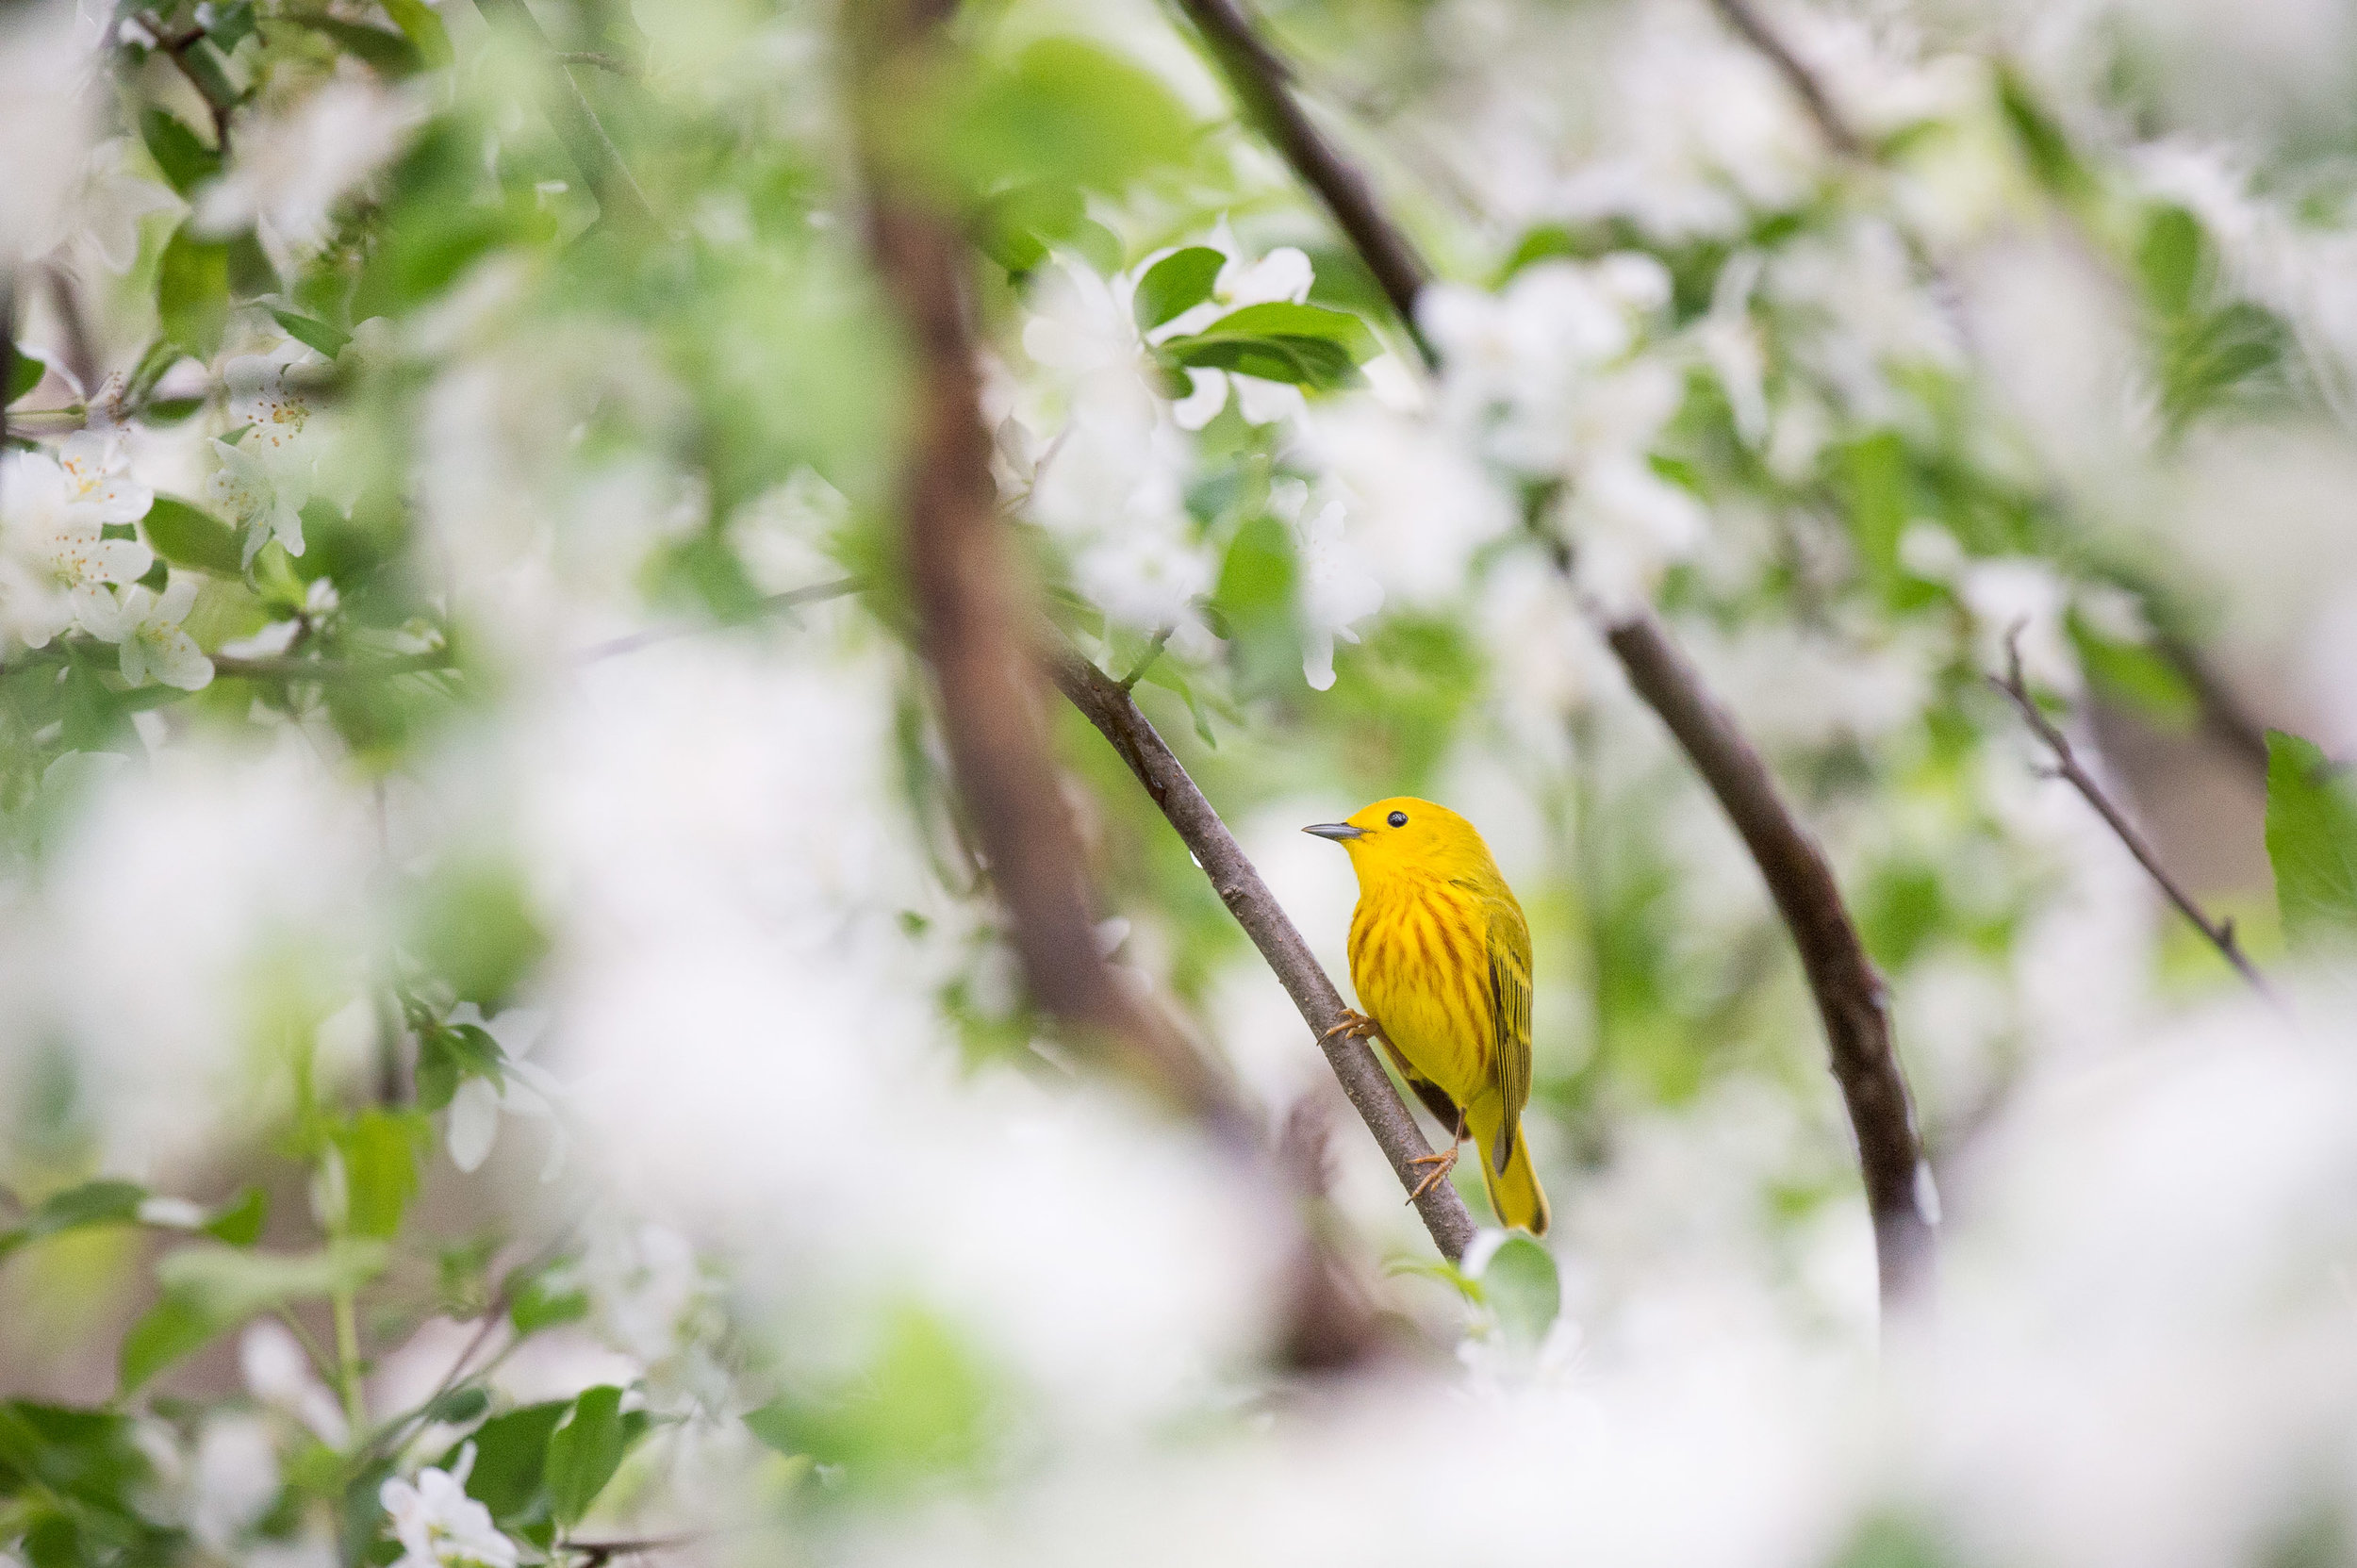 A vibrant Yellow Warbler stands out in a tree with fresh green leaves and big white flowering blossoms.